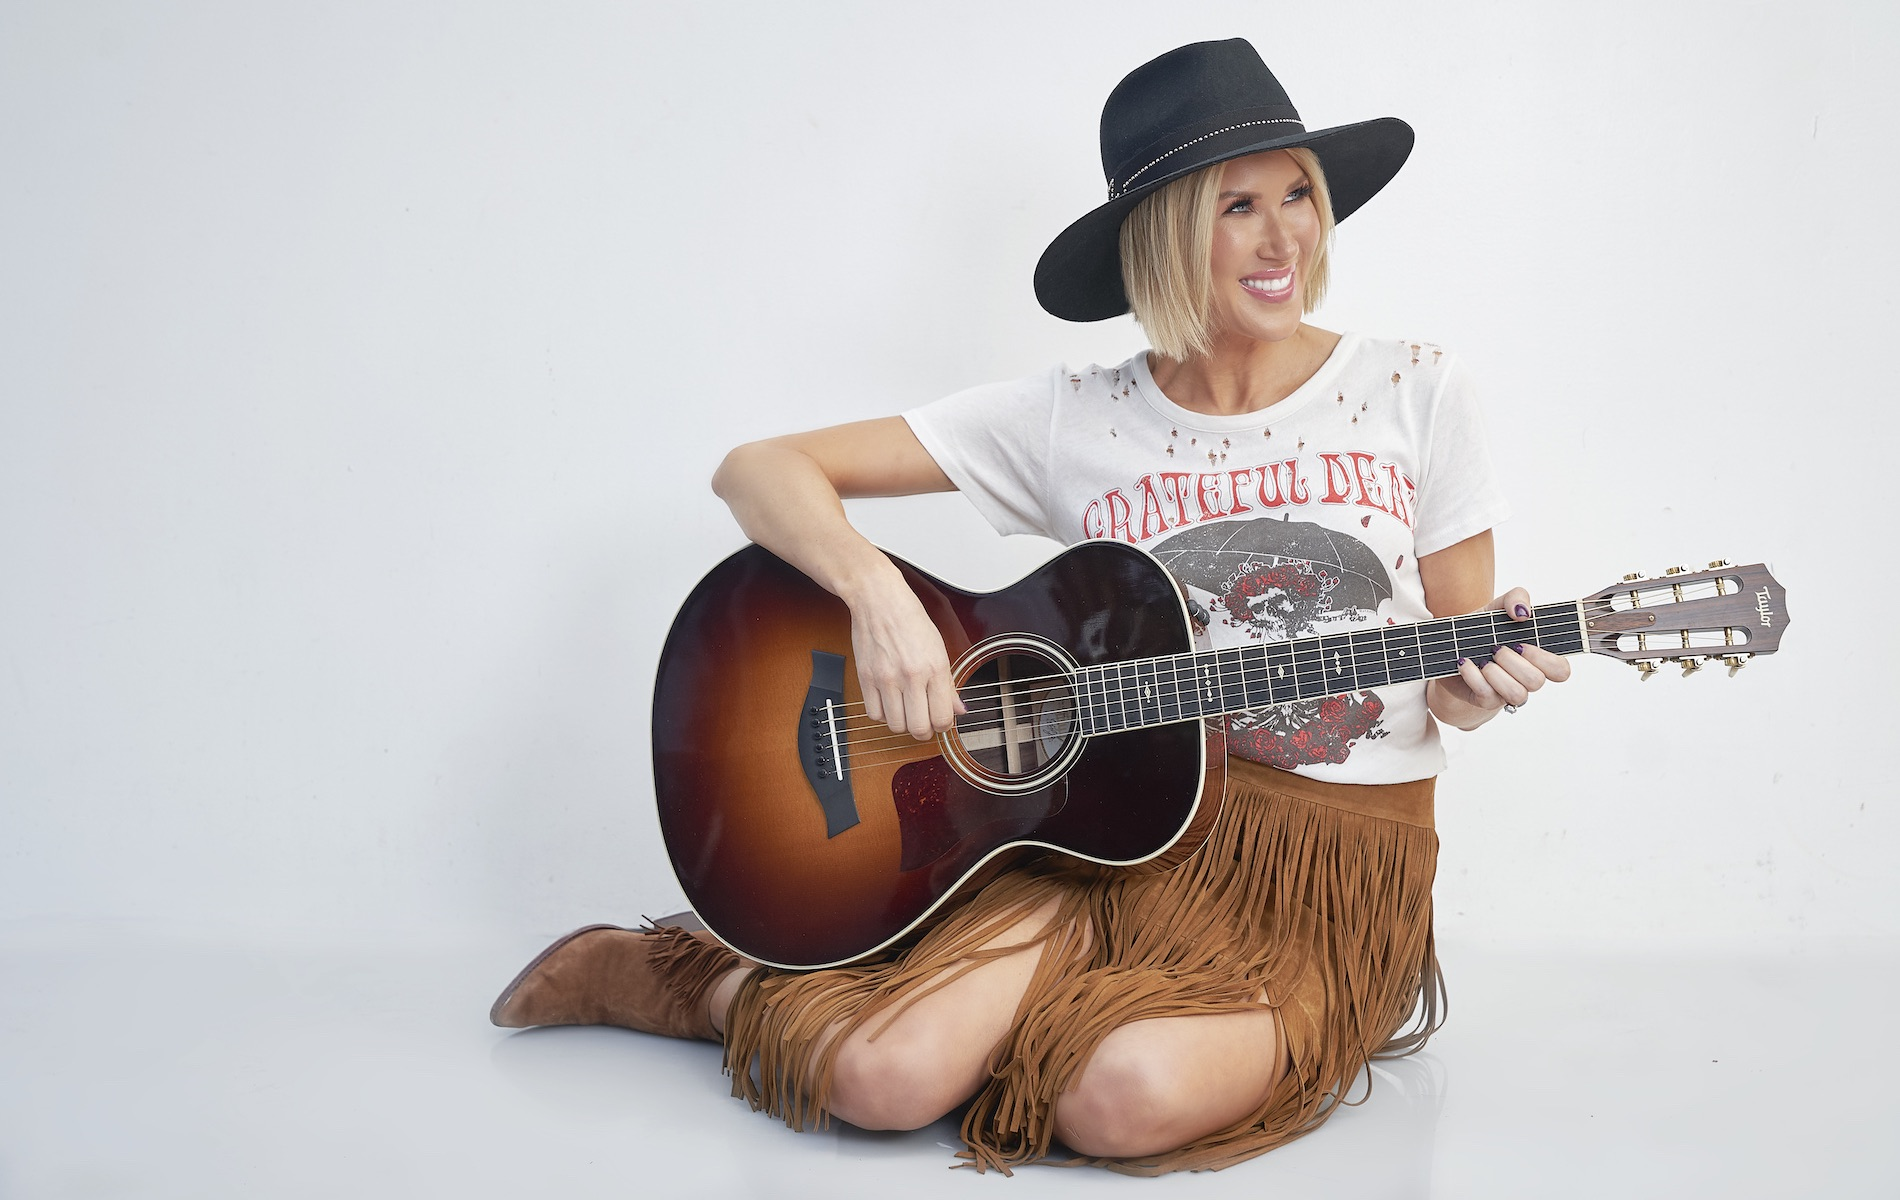 Kimberly Dawn country music artist tips for learning music at home VIE magazine